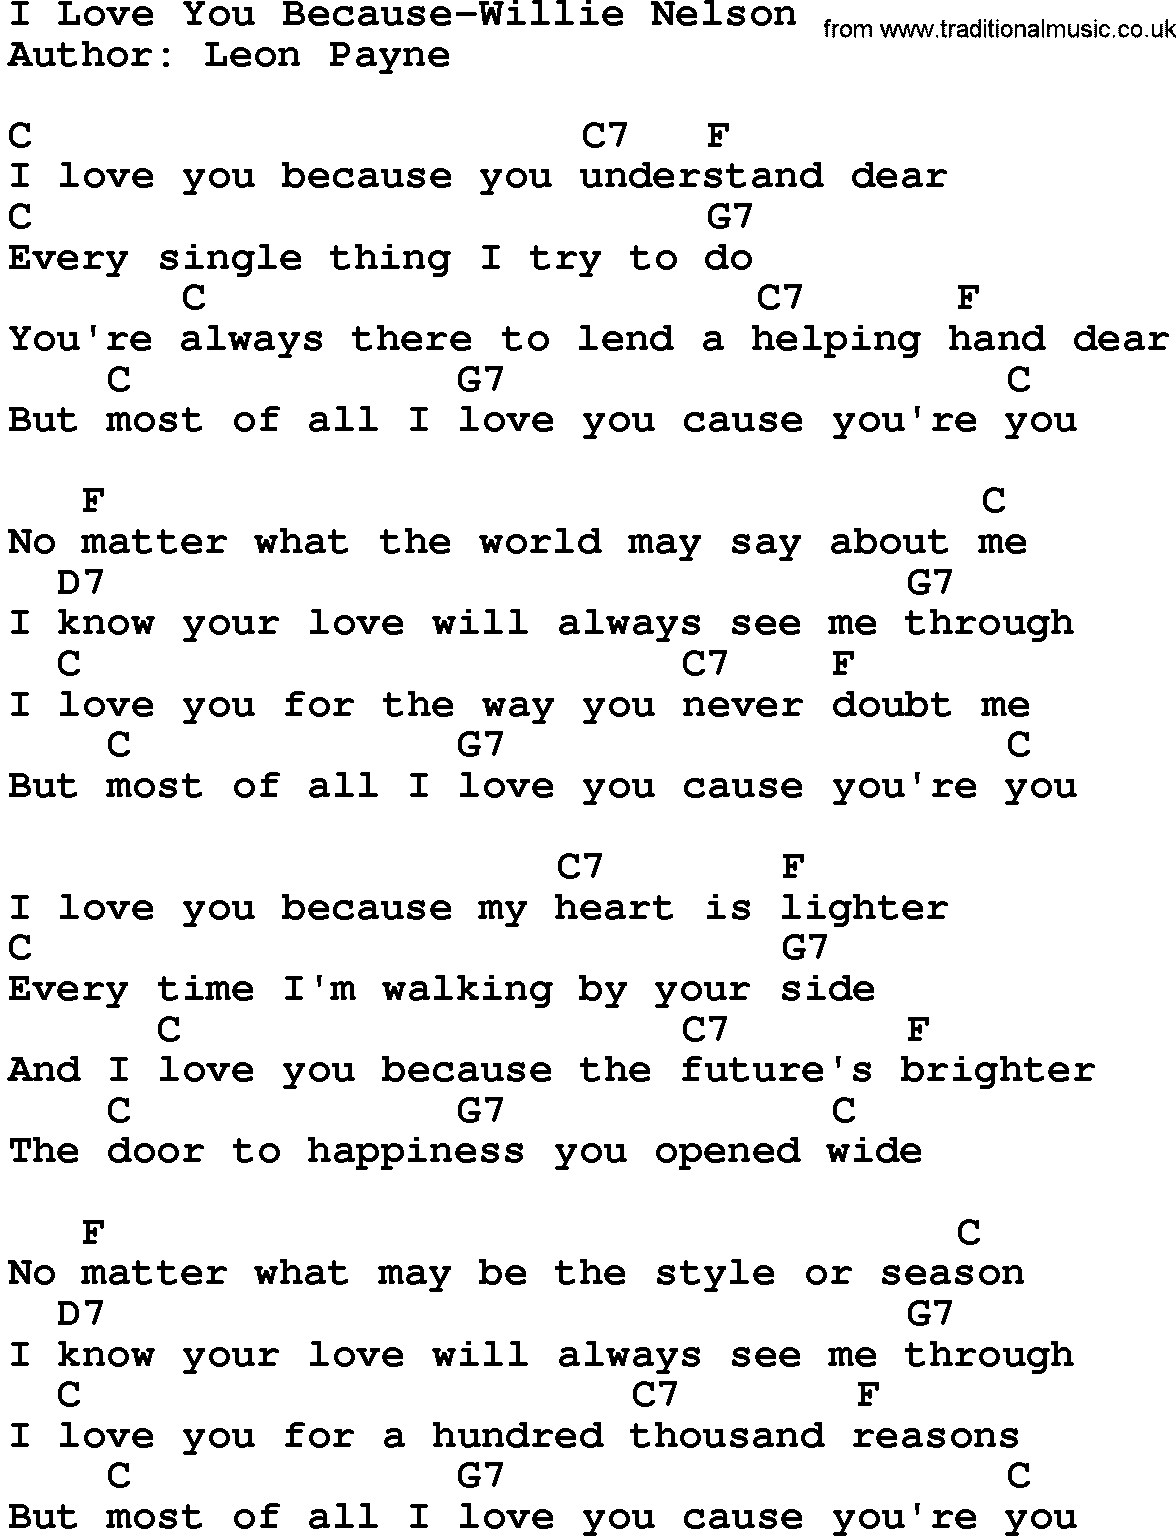 graphic relating to I Love You Because Printable identify Place New music:I Take pleasure in On your own Given that-Willie Nelson Lyrics and Chords